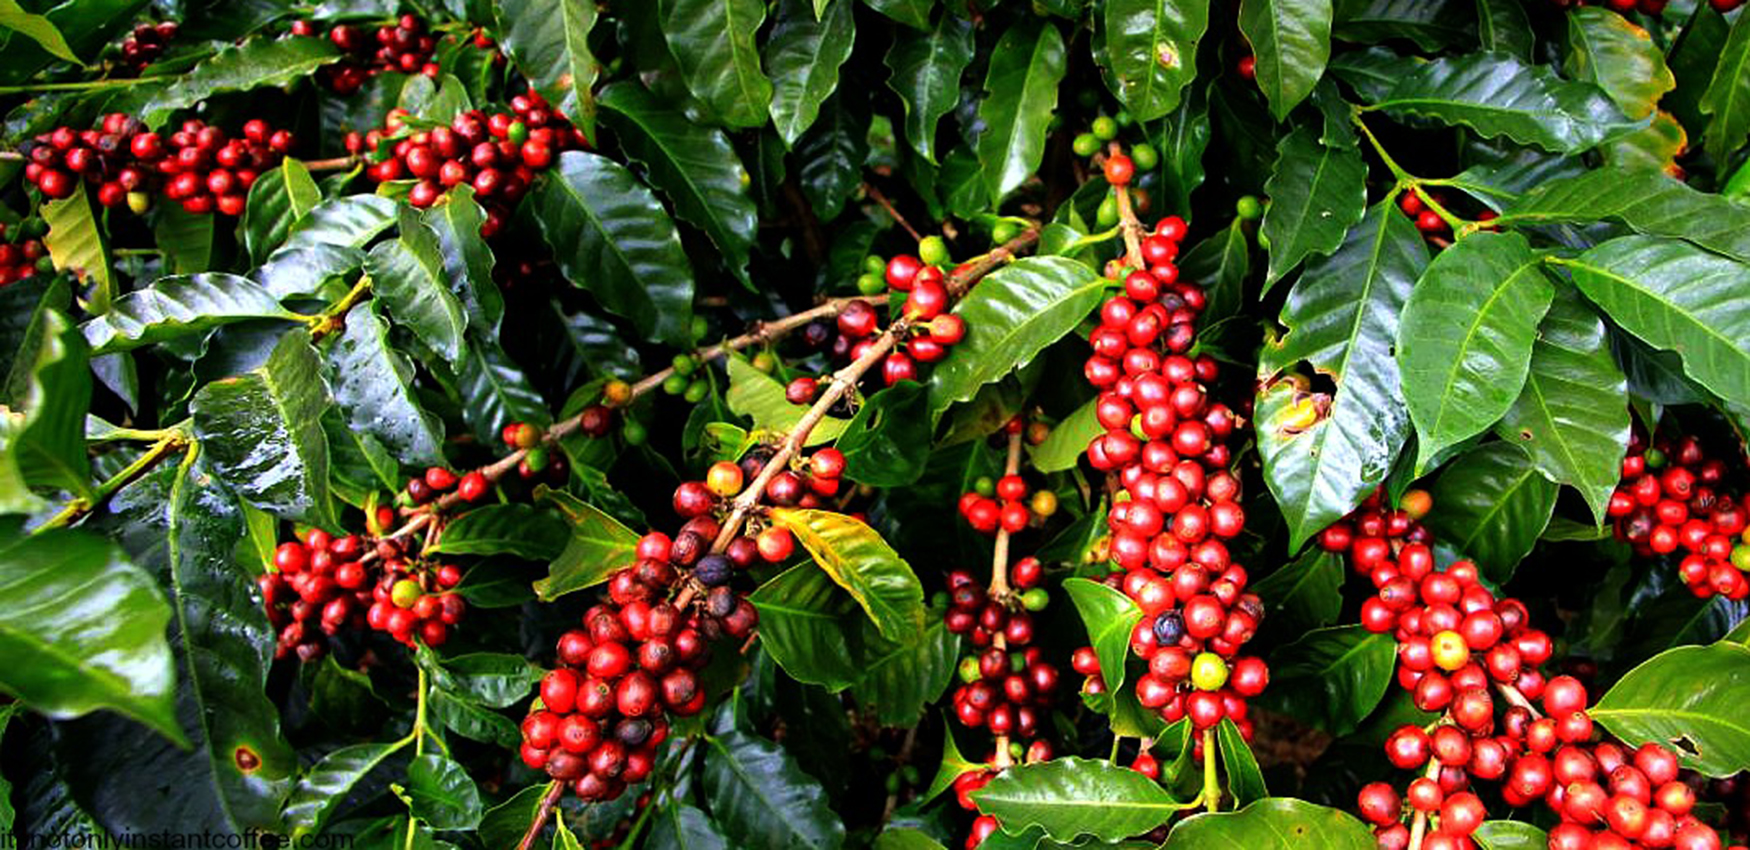 Coffee and Cocoa among producers in the Cusco region